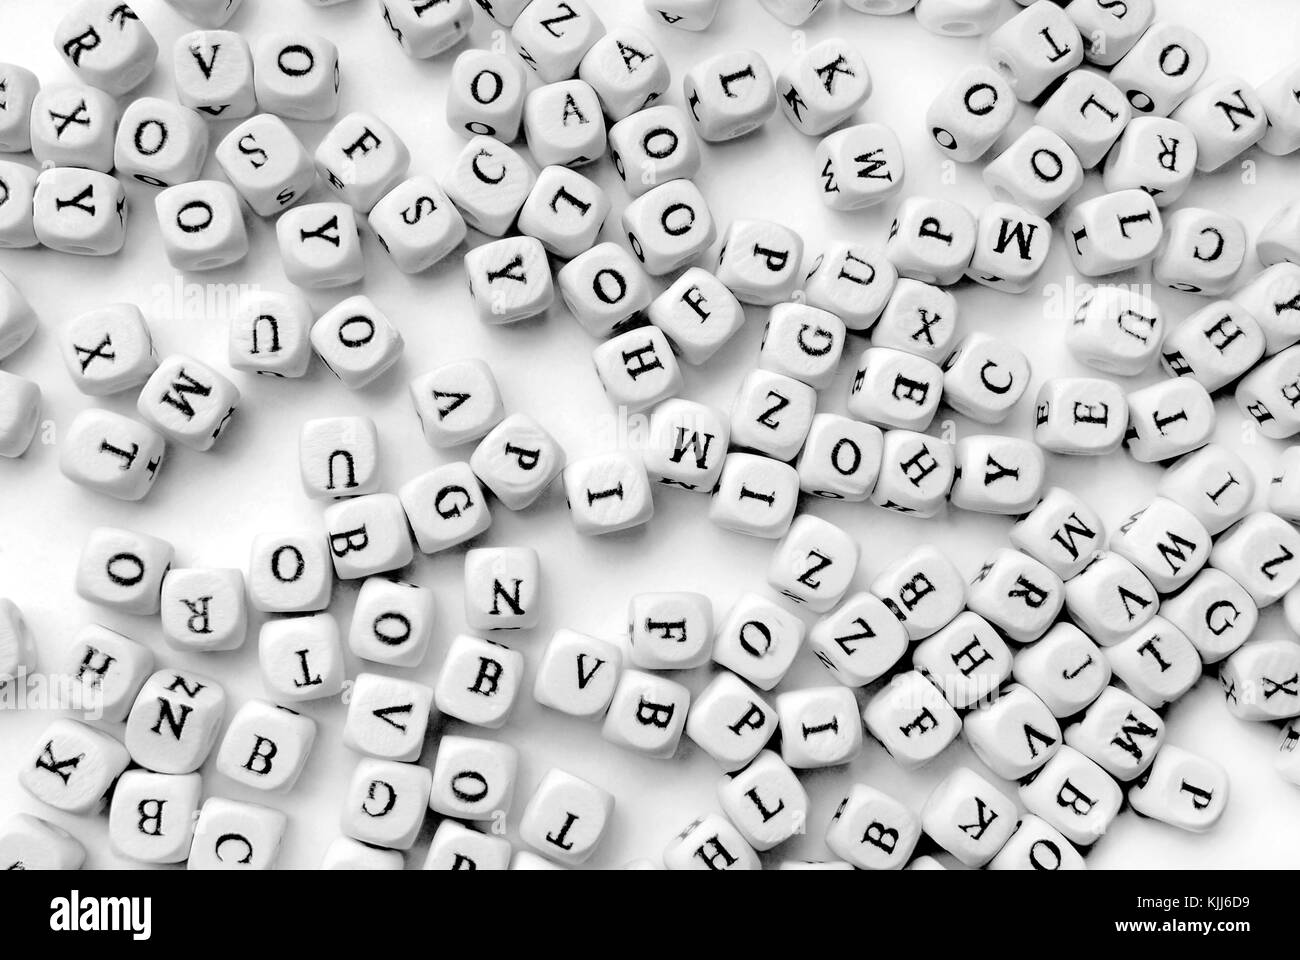 closeupof the white letters background - Stock Image